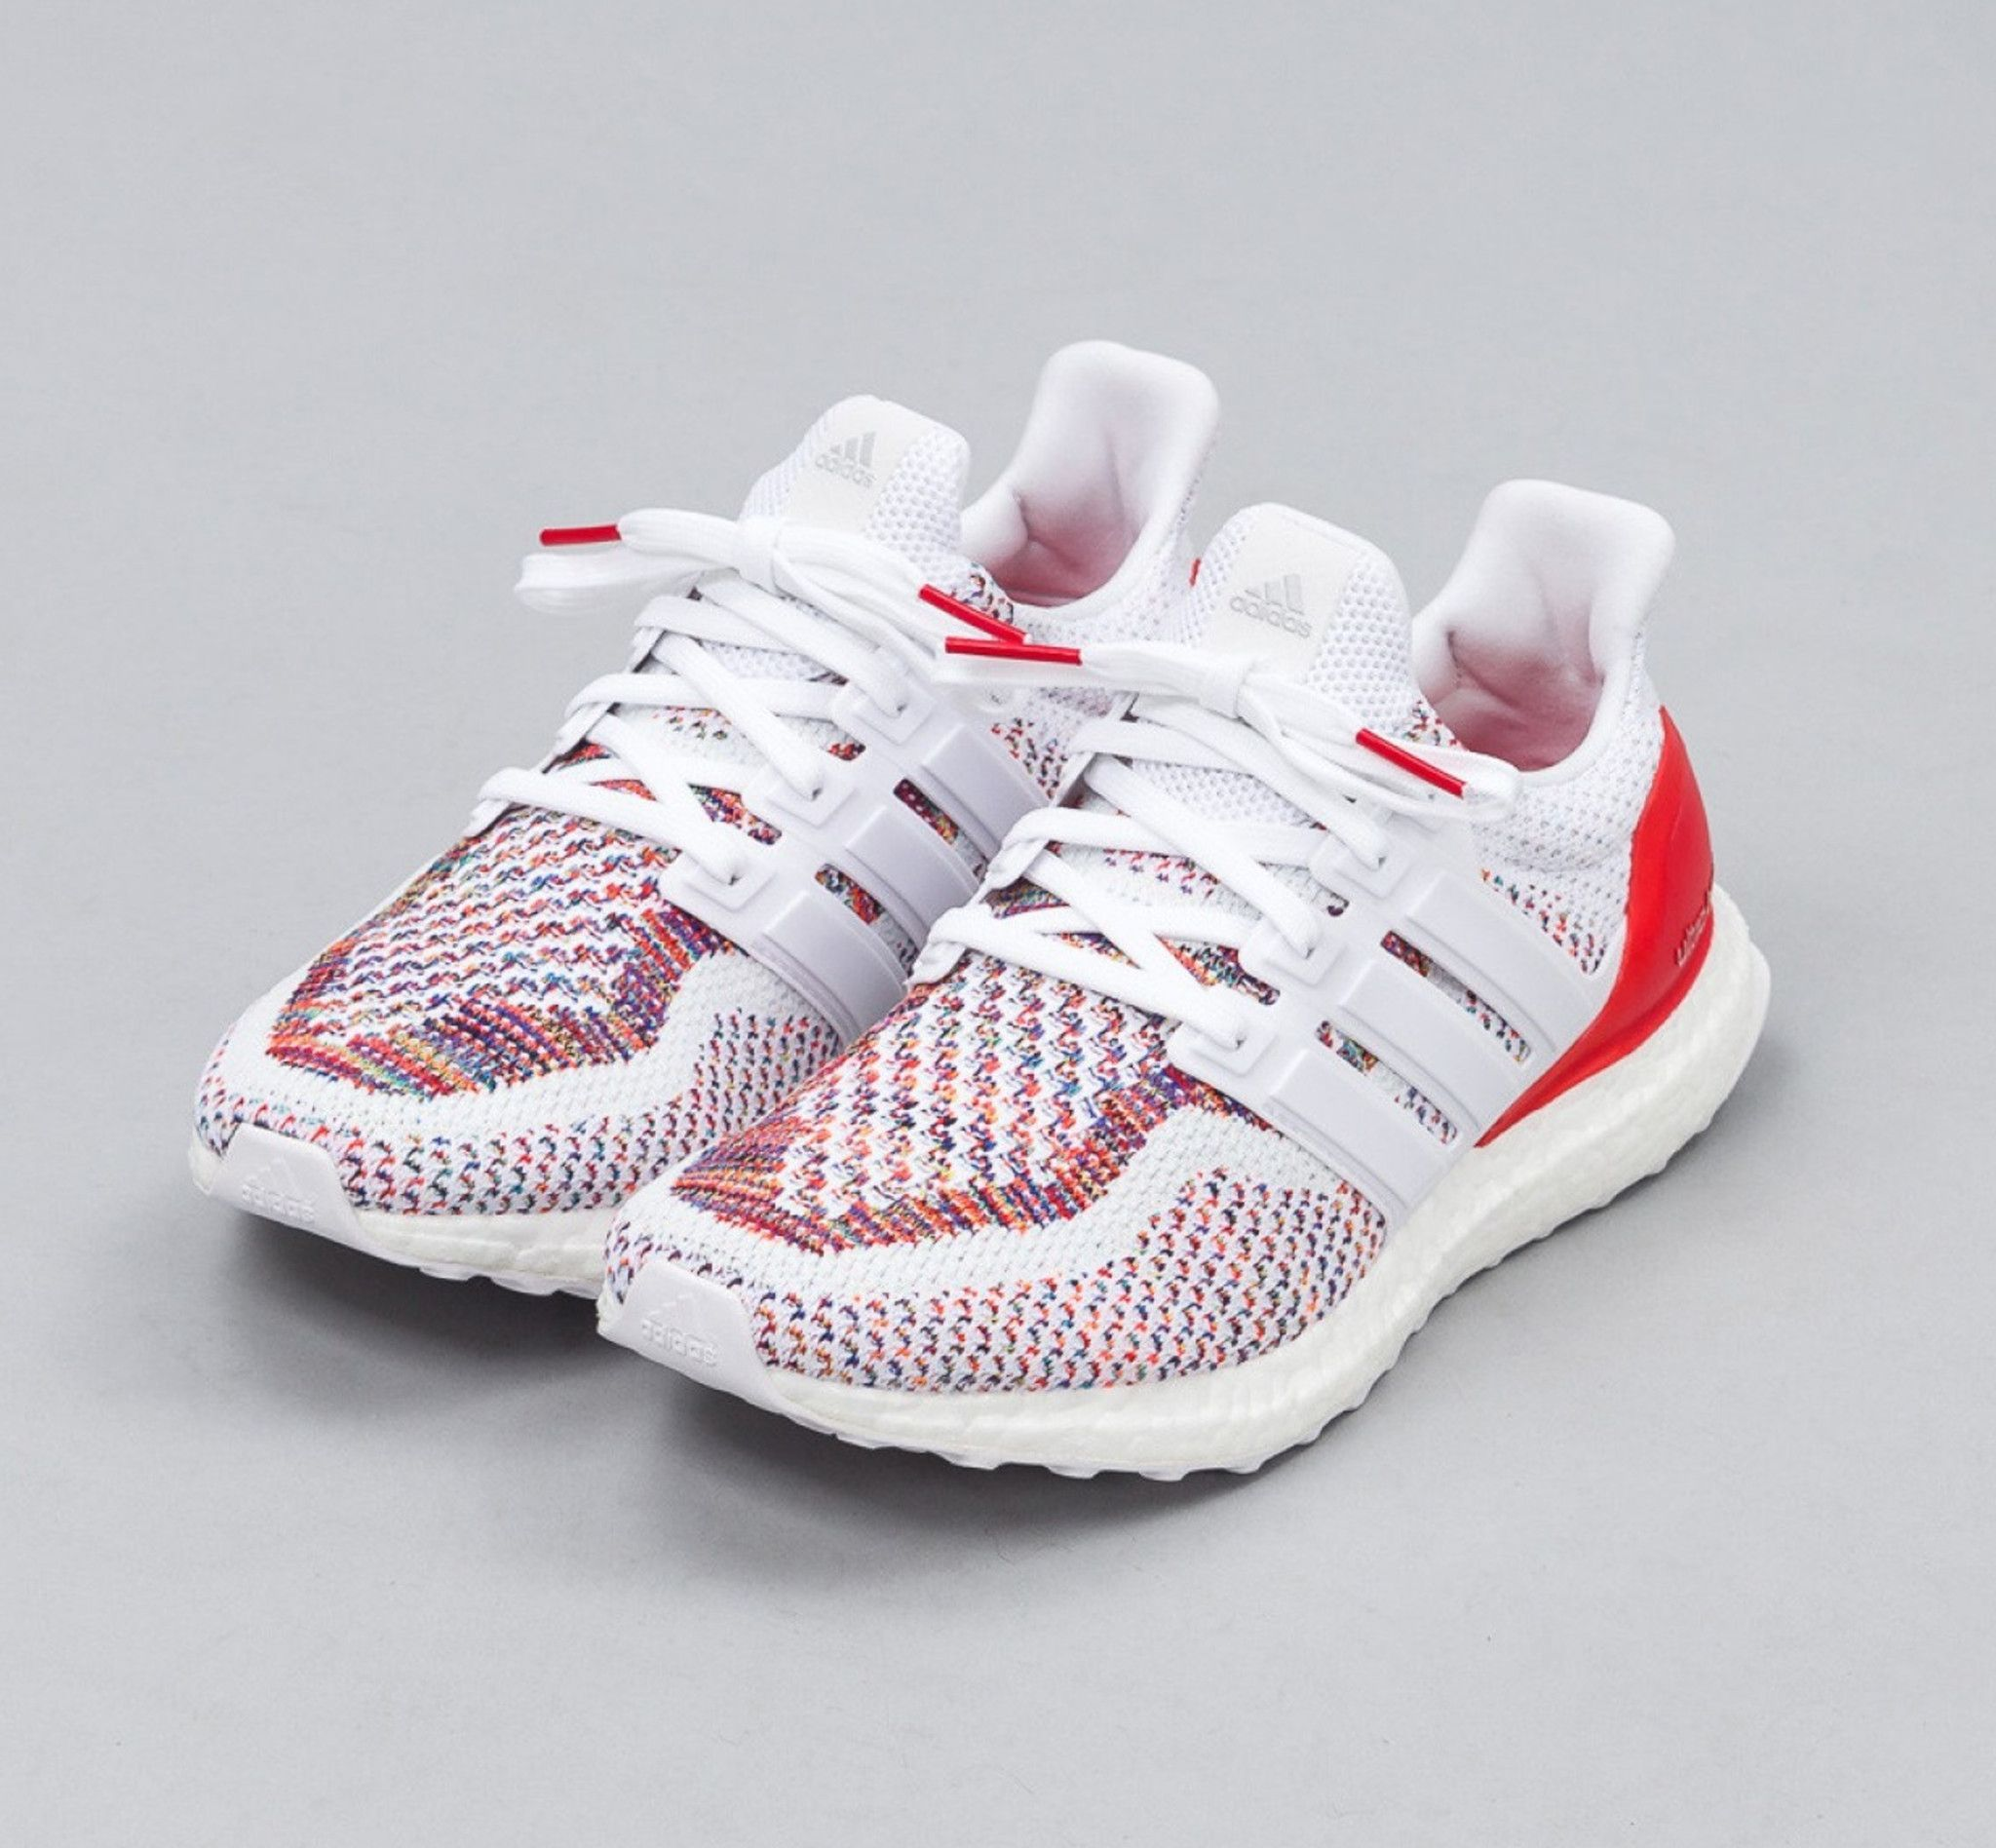 low cost bef9a 36cdf Adidas Ultra Boost M Multi Color 2.0 Size Red White Multicolor BB3911  Ultraboost